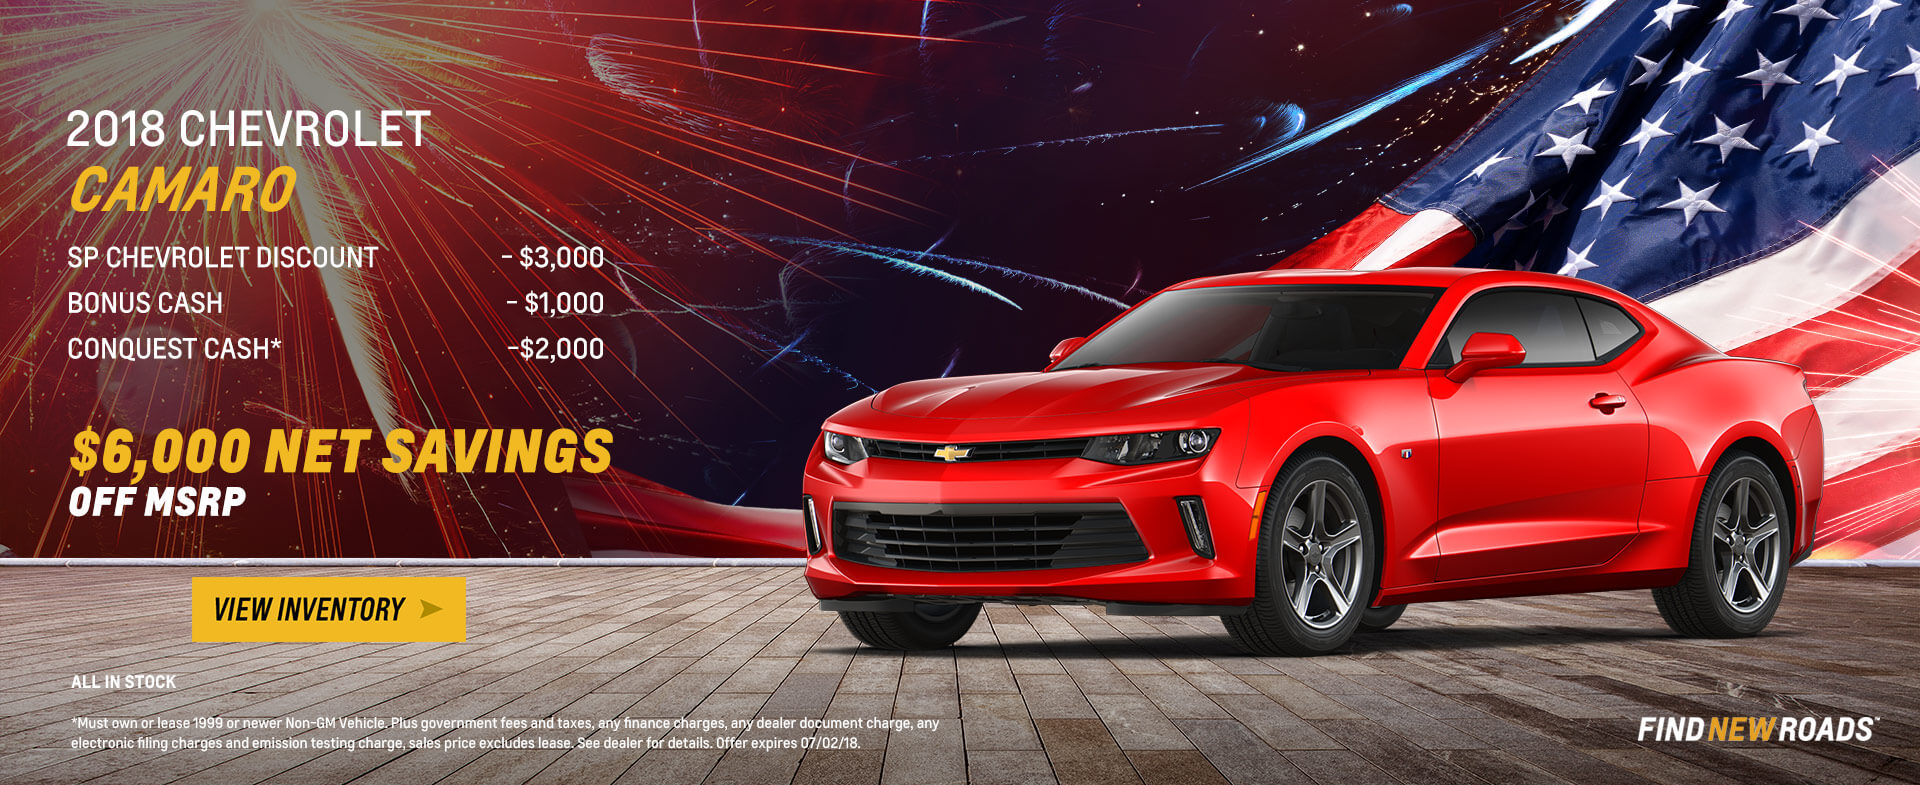 Camaro - $6,000 OFF MSRP